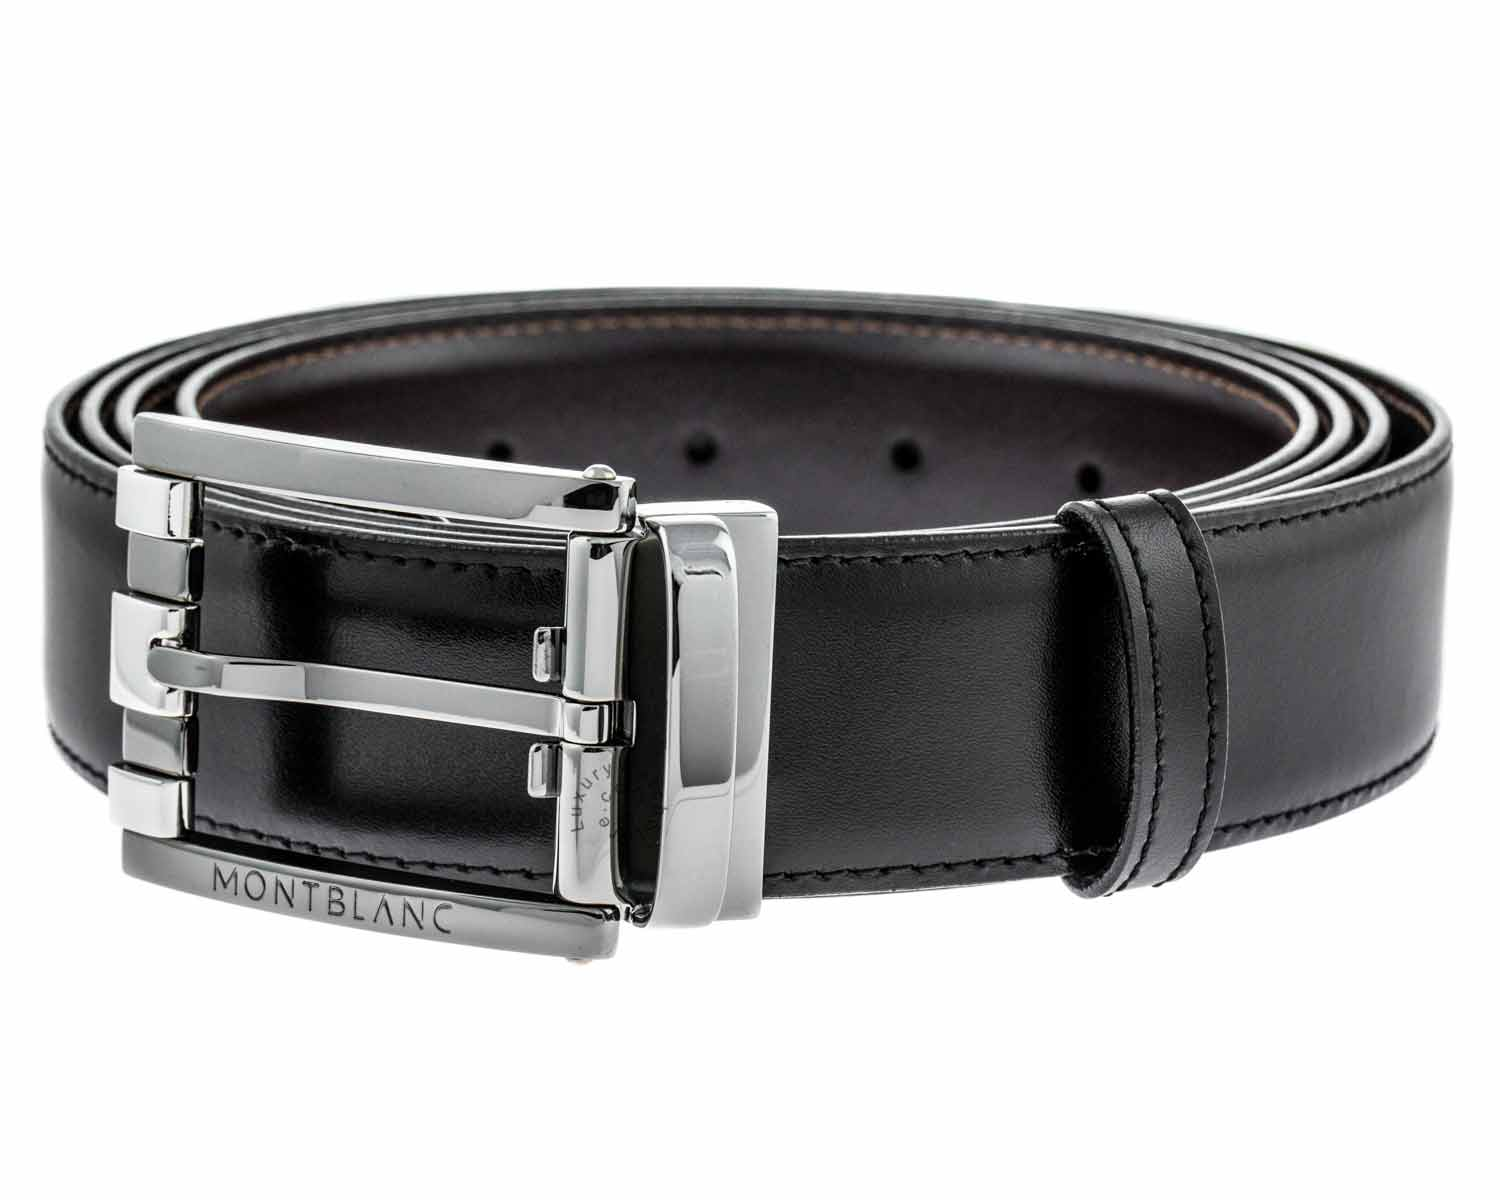 Montblanc 103445 Classic Line Men's Reversible Leather Belt